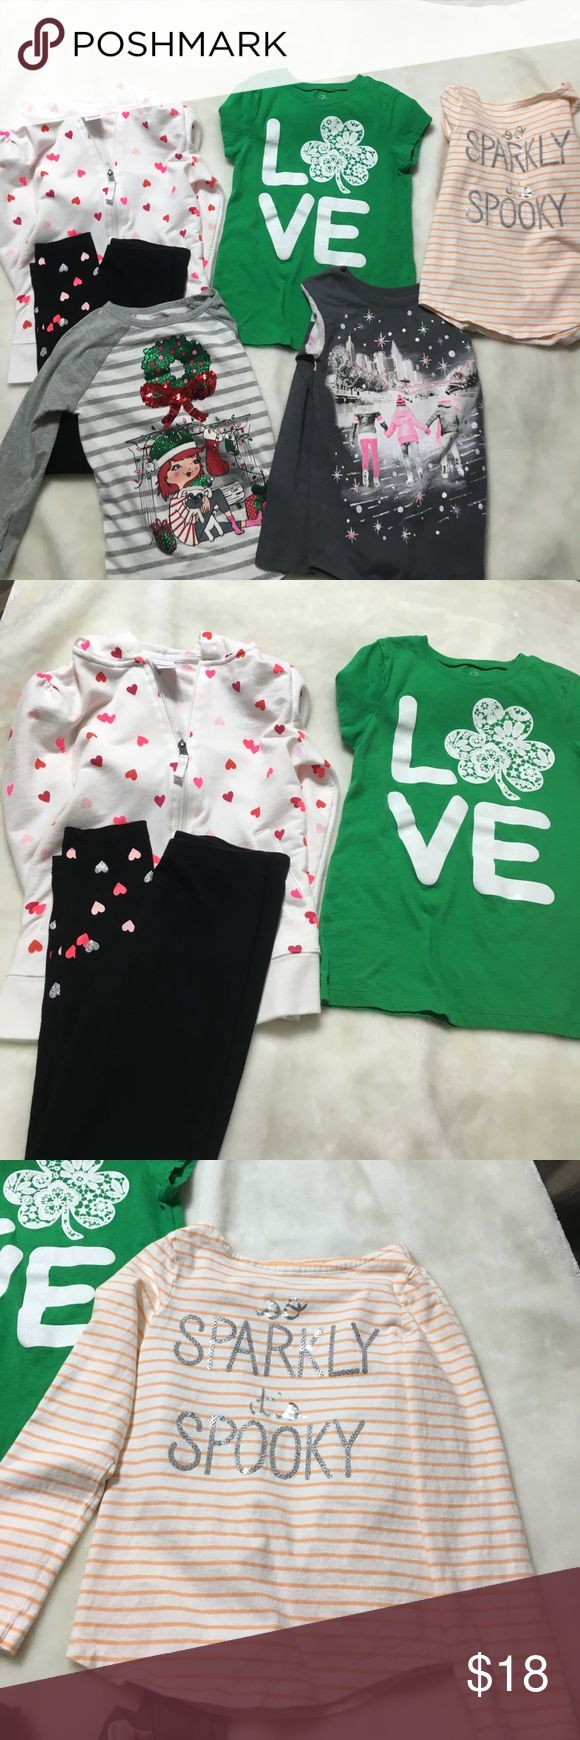 Holiday clothing lot size 7/8 Heart Hoodie and heart leggings - Circo.  Halloween Top - Crazy 8.    Shamrock shirt - Children's Place.    Winter Scene Top -Justice.    Christmas Top - Children's Place Other